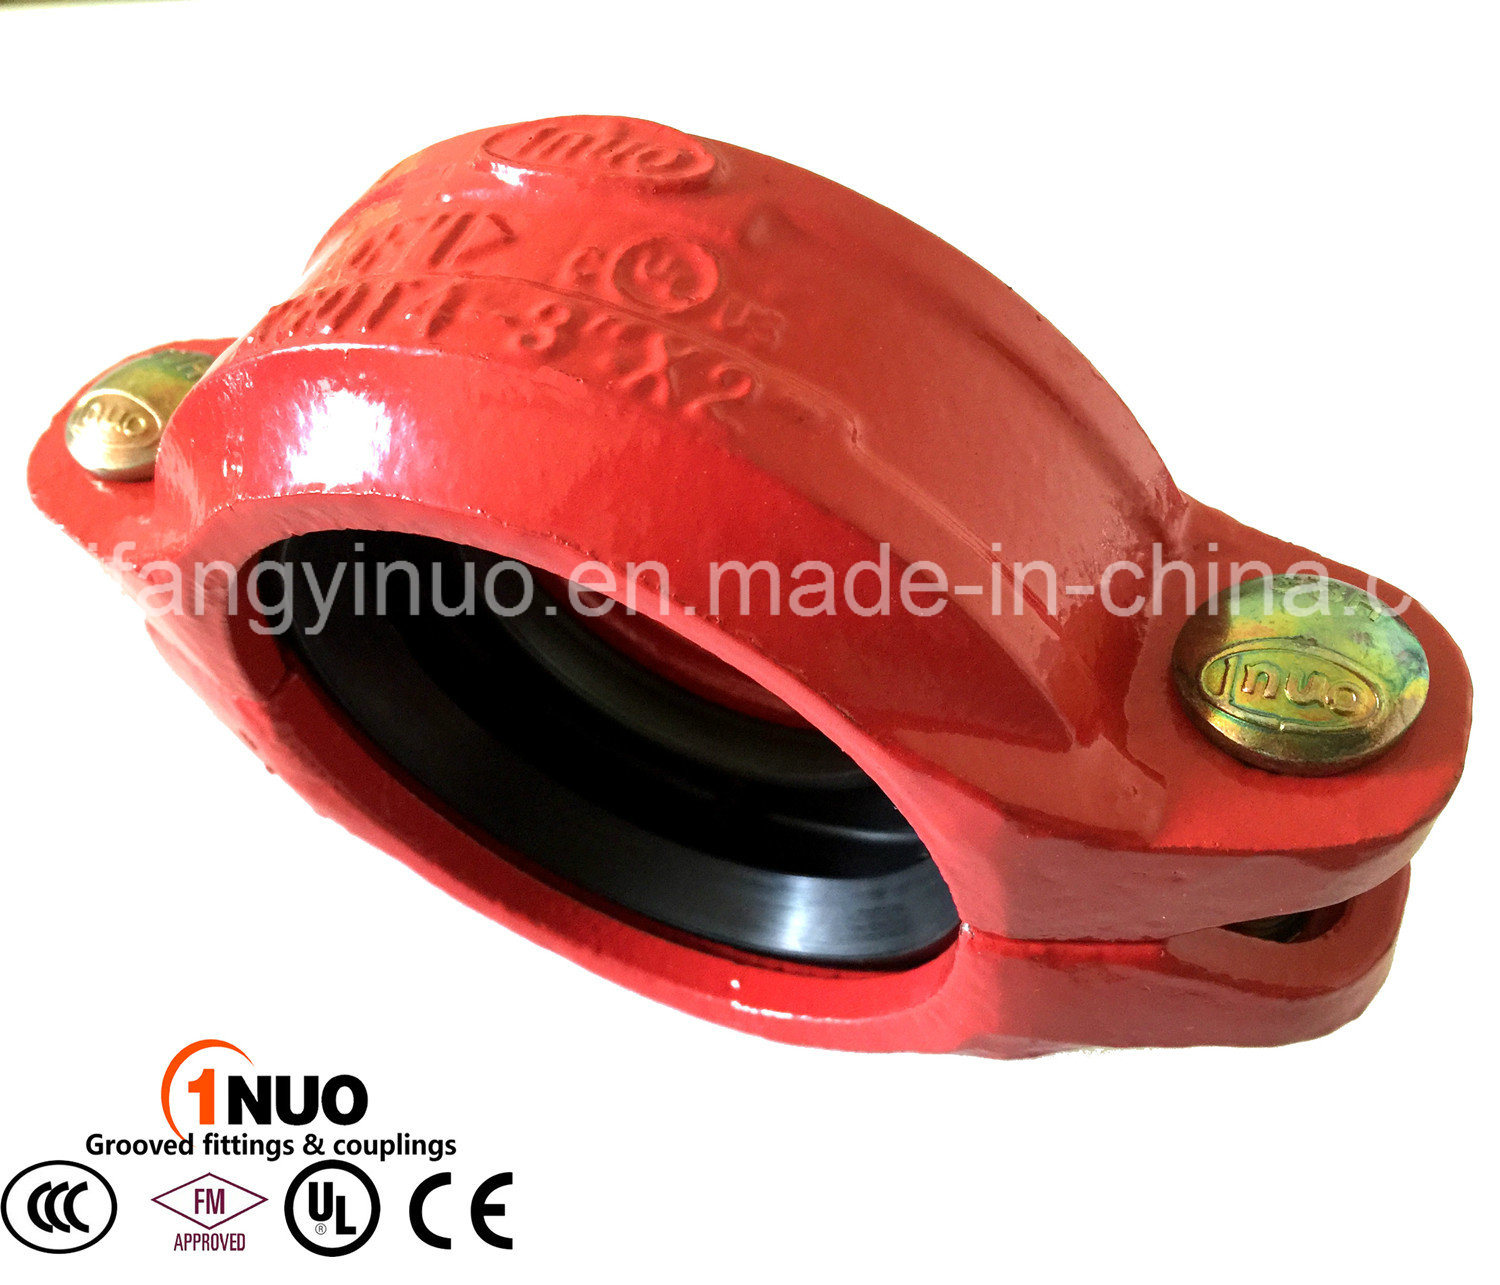 High Quality Flexible Grooved Reducing Coupling with Famous 1nuo Brand